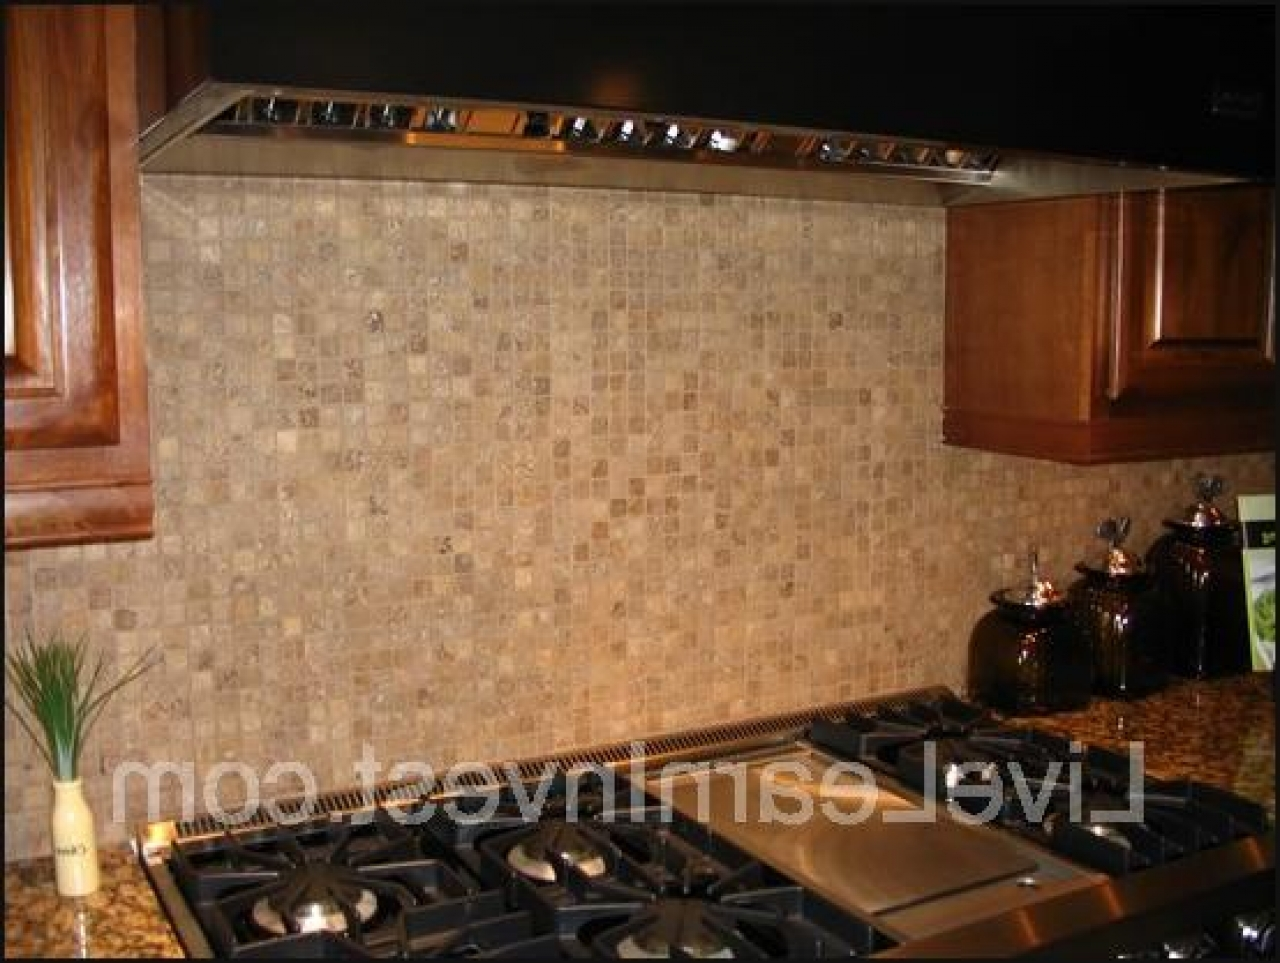 Wallpaper Backsplash for Kitchen - WallpaperSafari on wallpaper kitchen backsplash ideas, wallpaper design for kitchen, wallpaper colors for kitchen, wallpaper accent wall for kitchen,